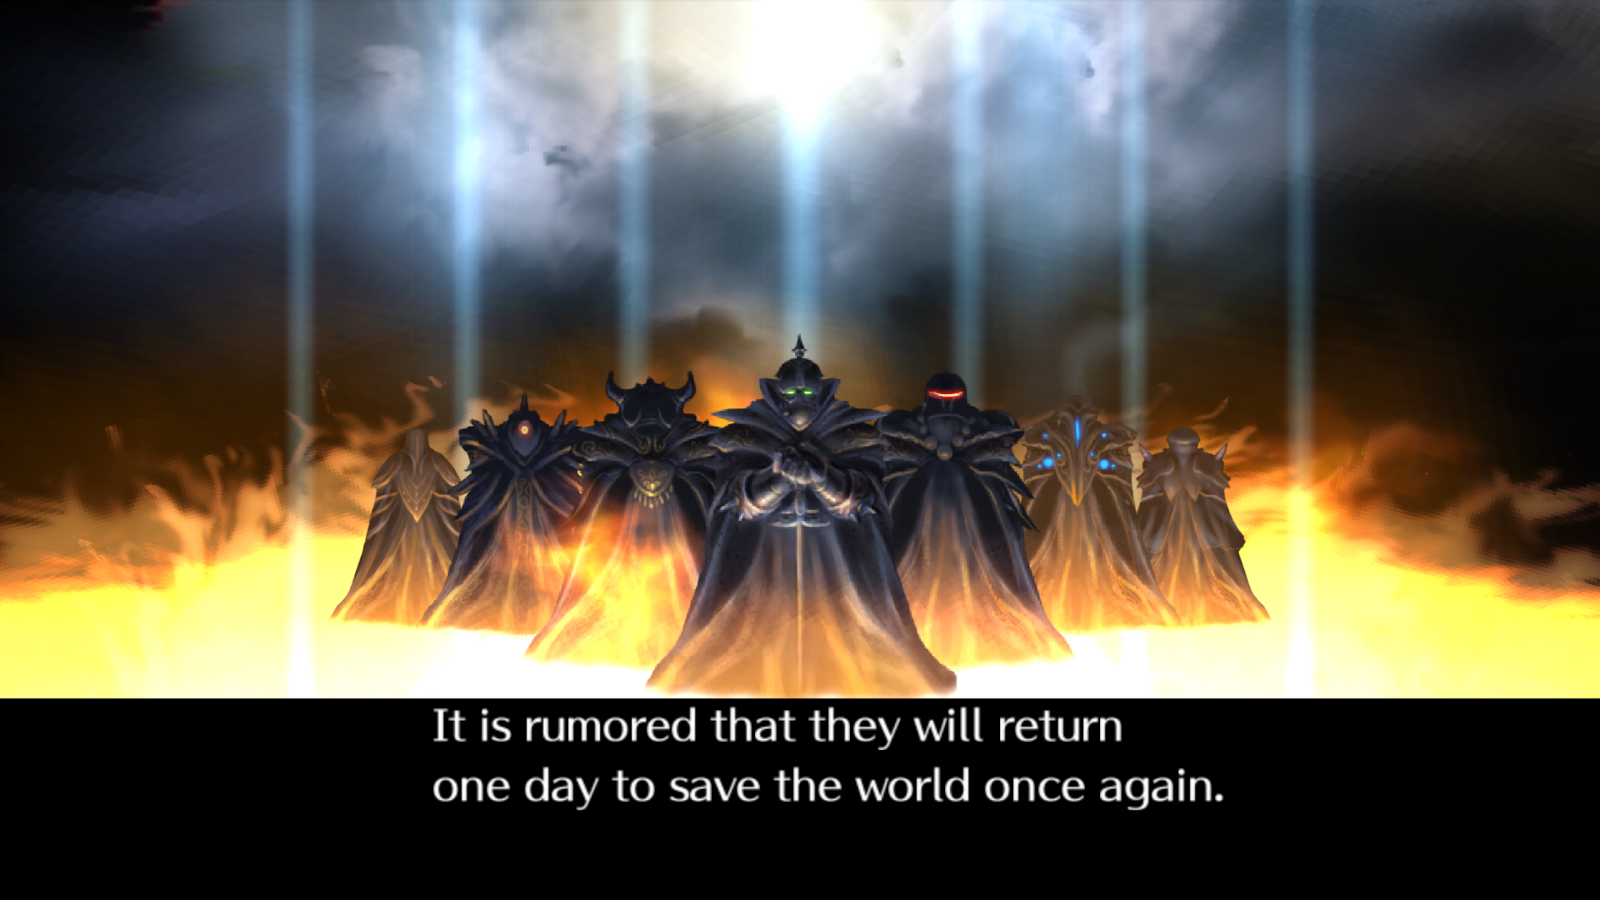 Romancing SaGa 2 Screenshot 14